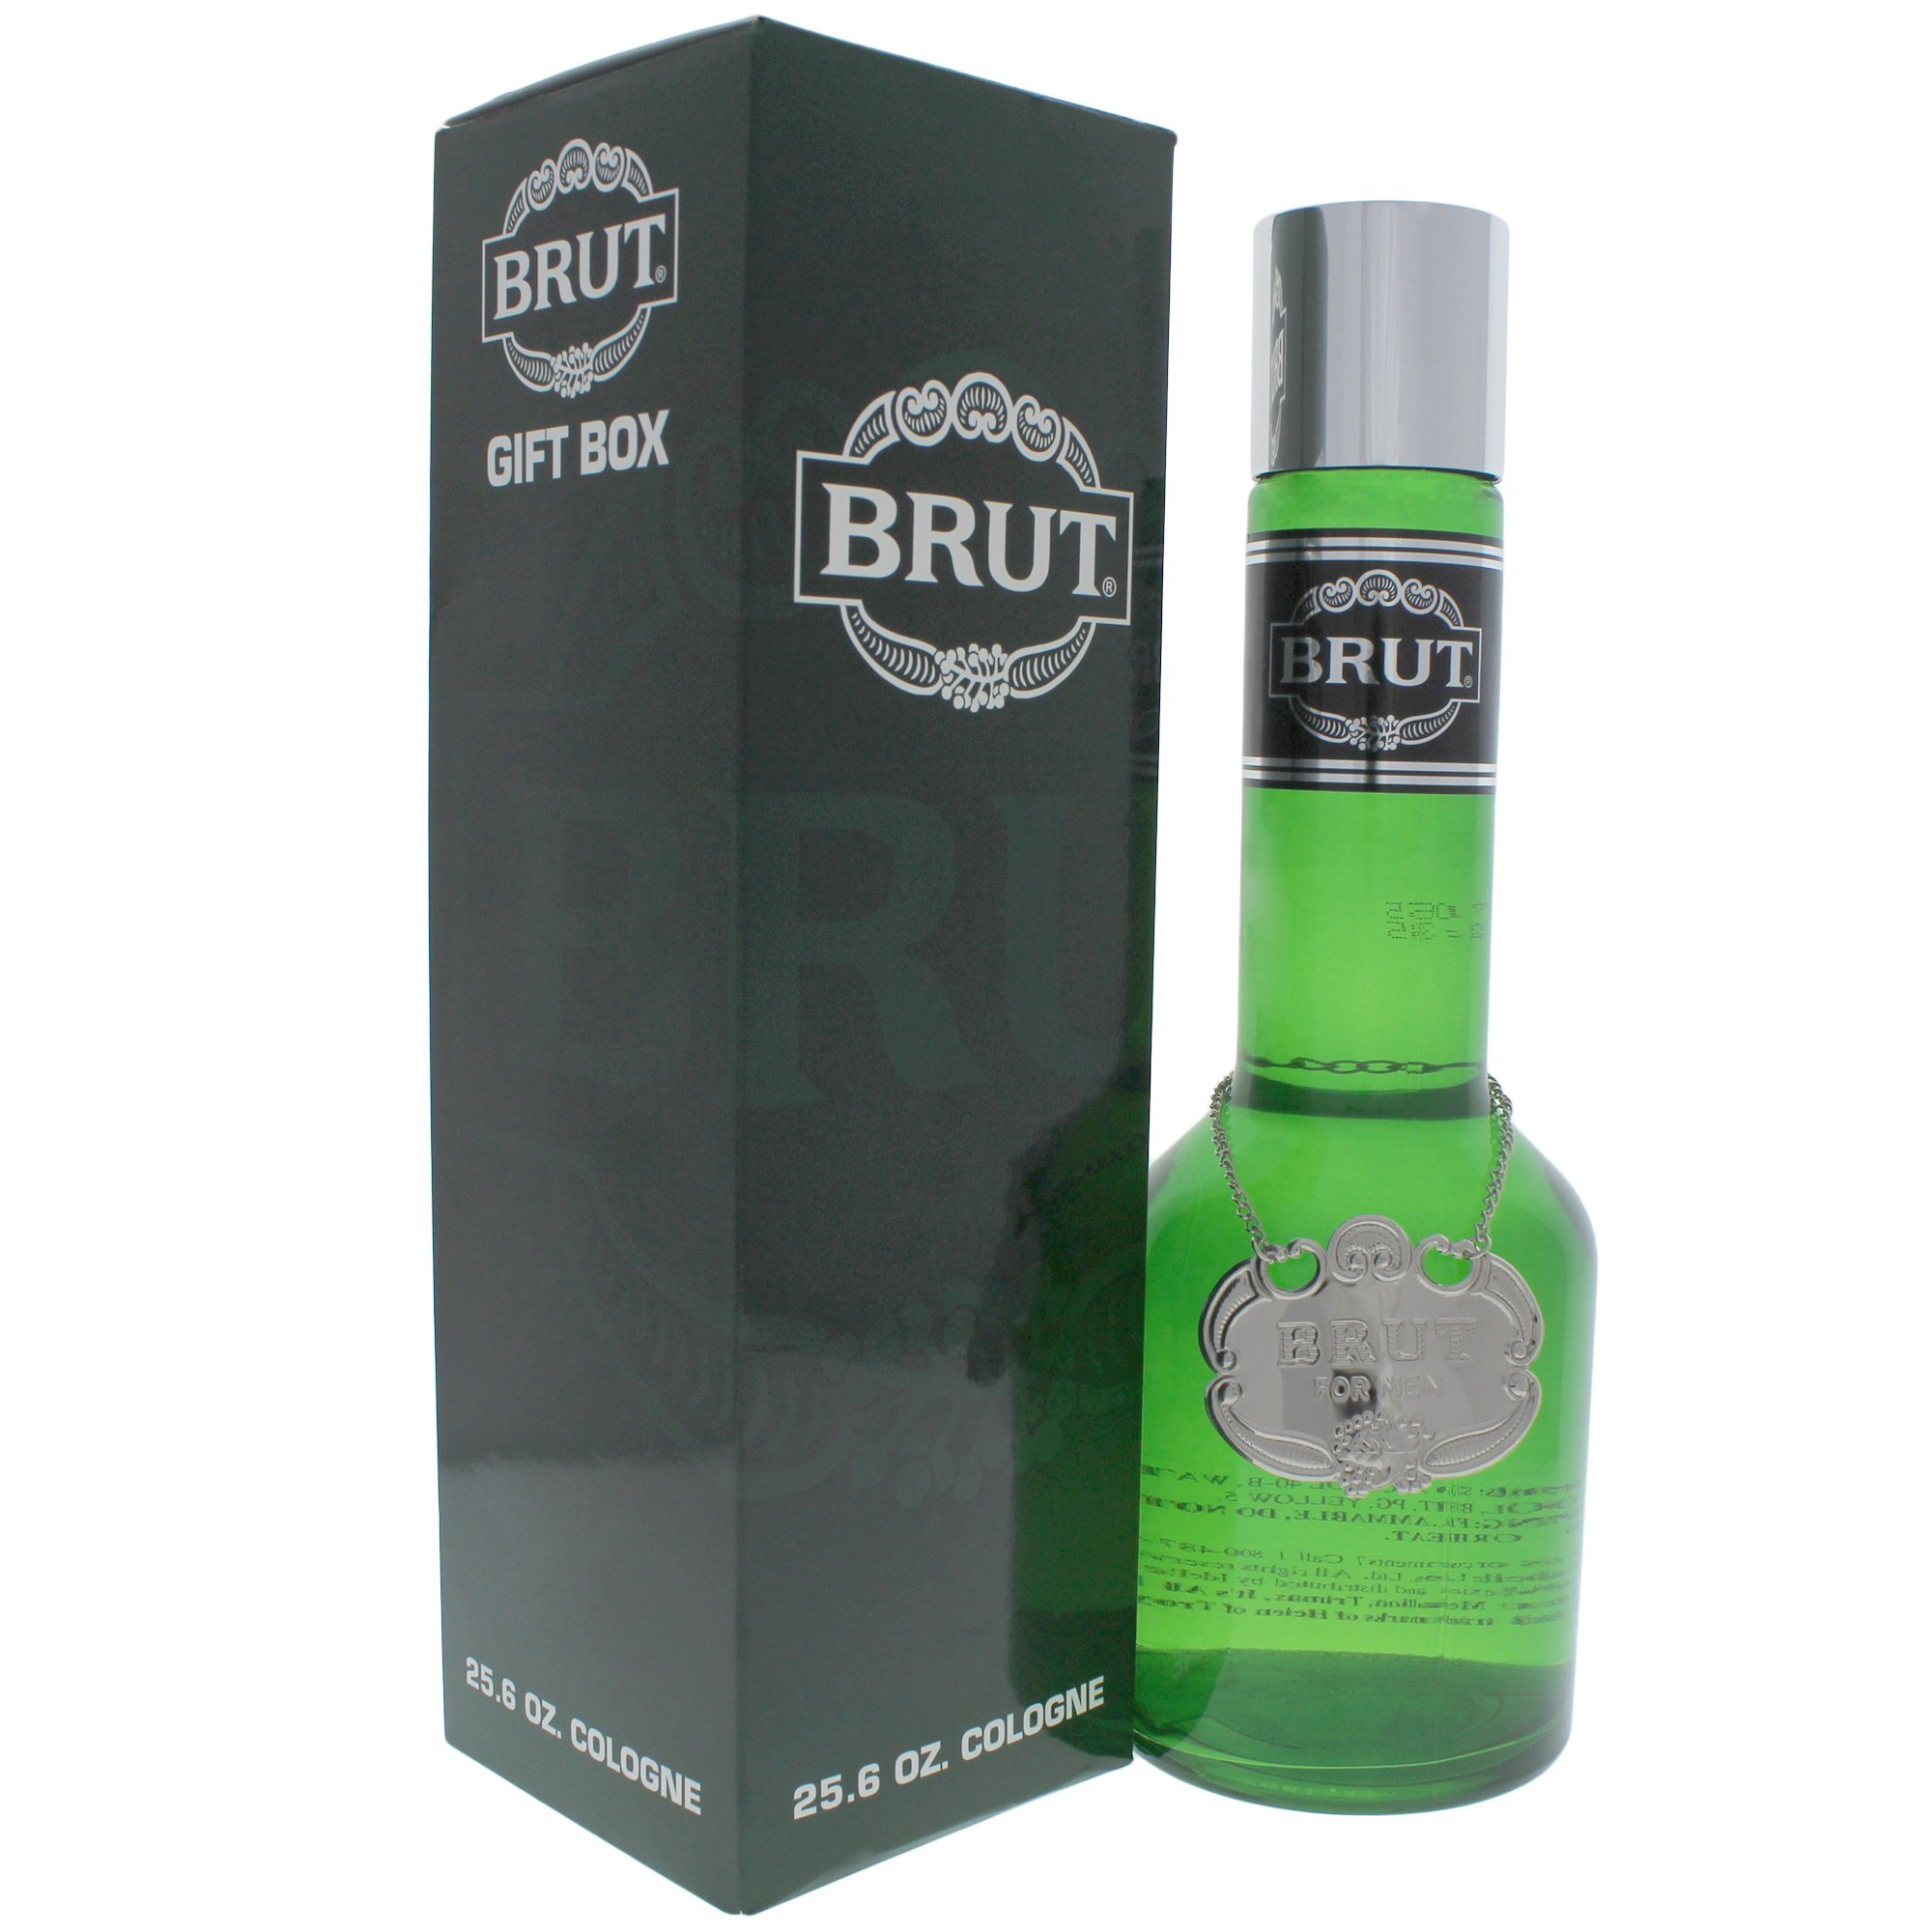 Brut Perfume Consumo Hombre - 750 ml product image